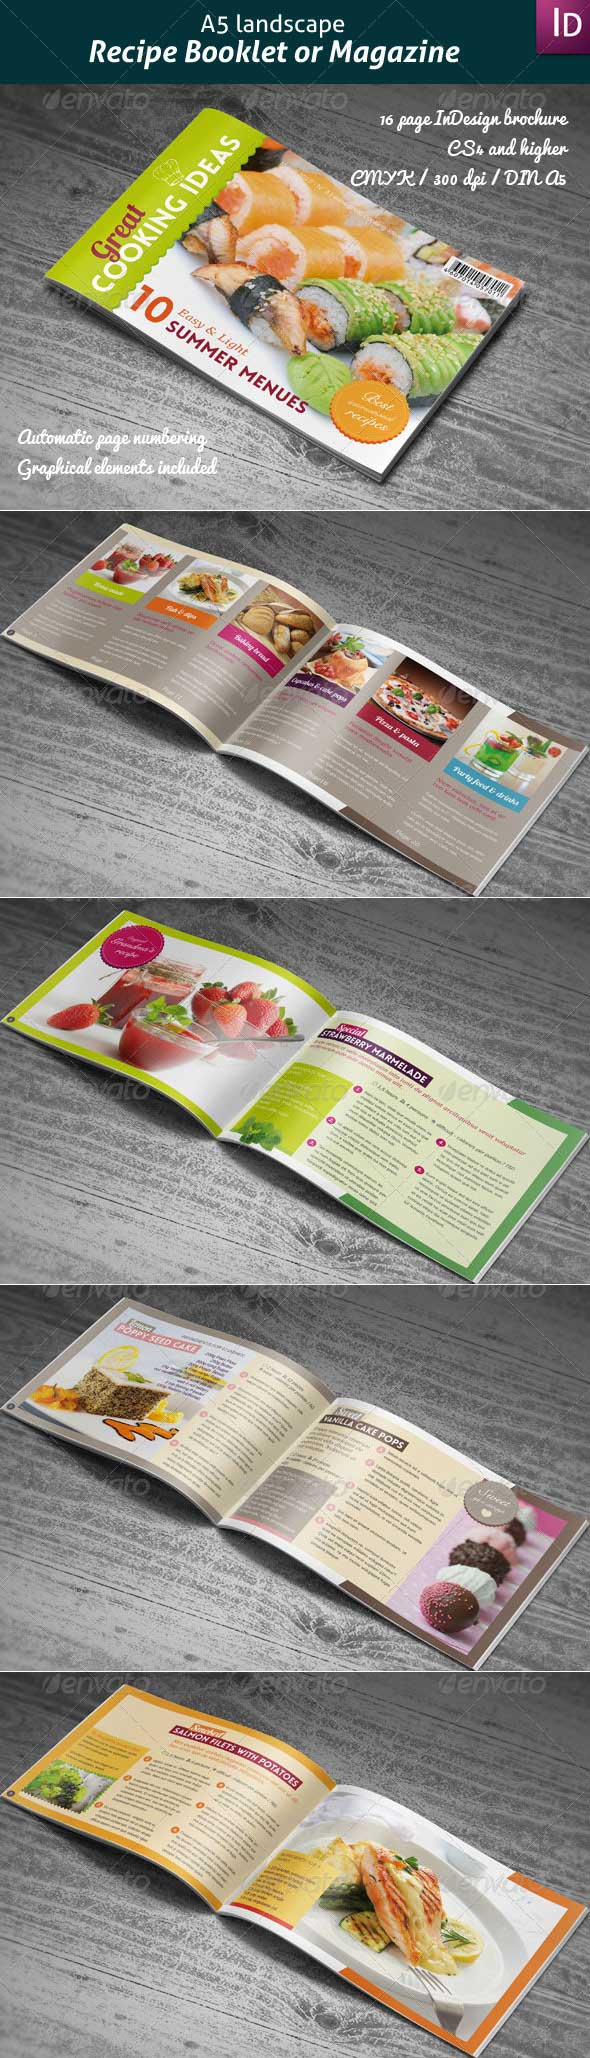 recipes-booklet-or-magazine-template